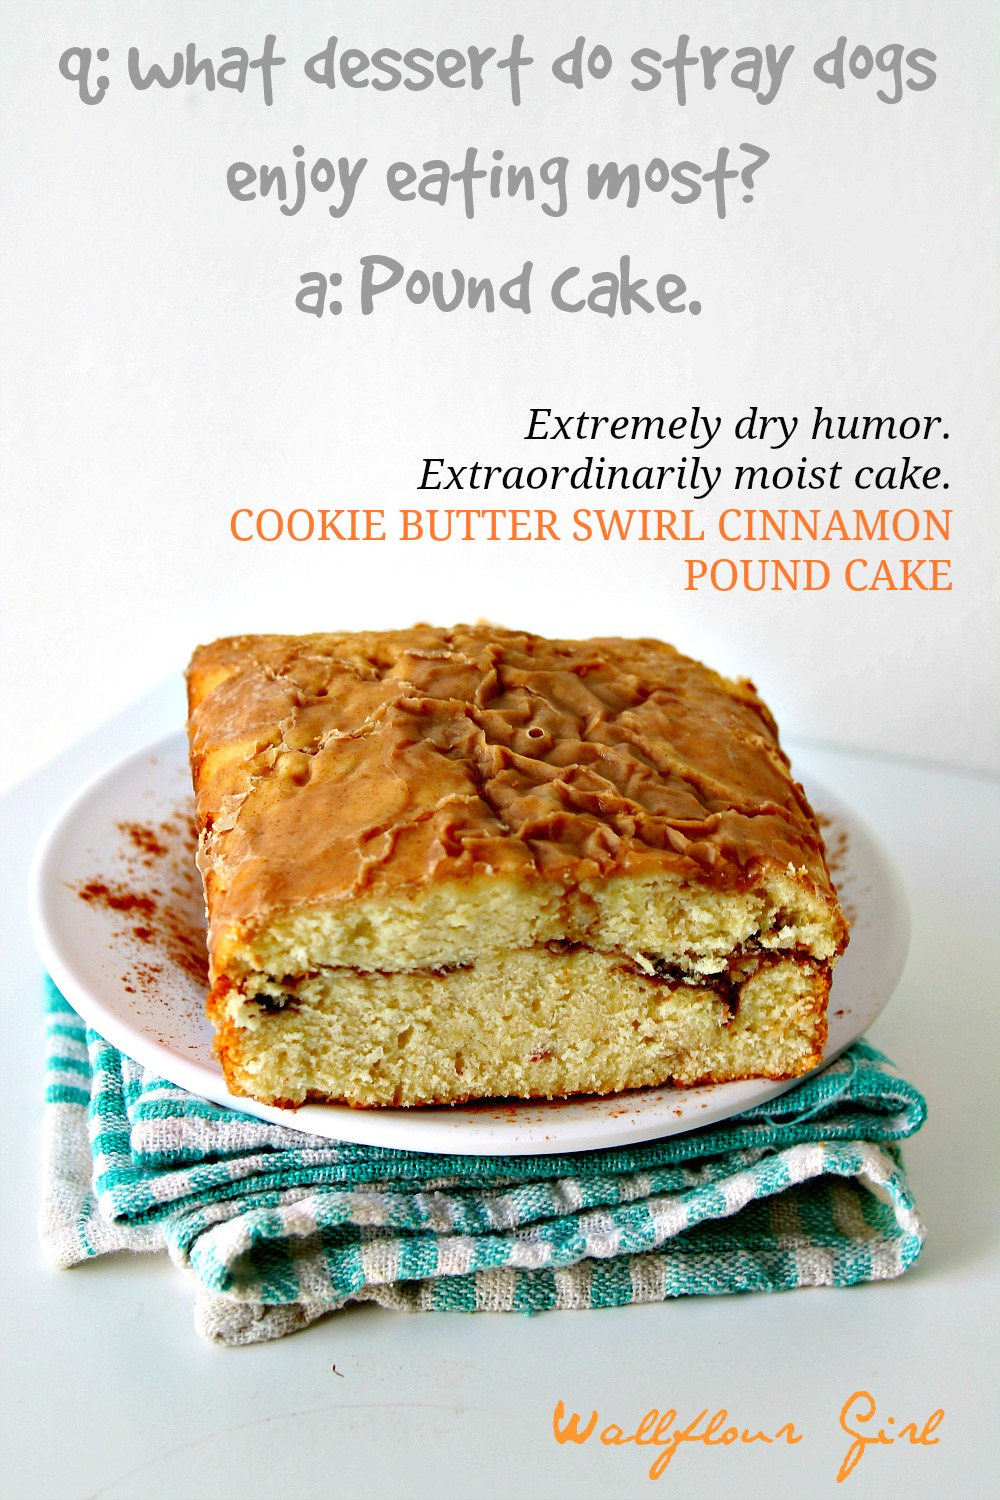 Cookie Butter Swirl Cinnamon Pound Cake 7--032614